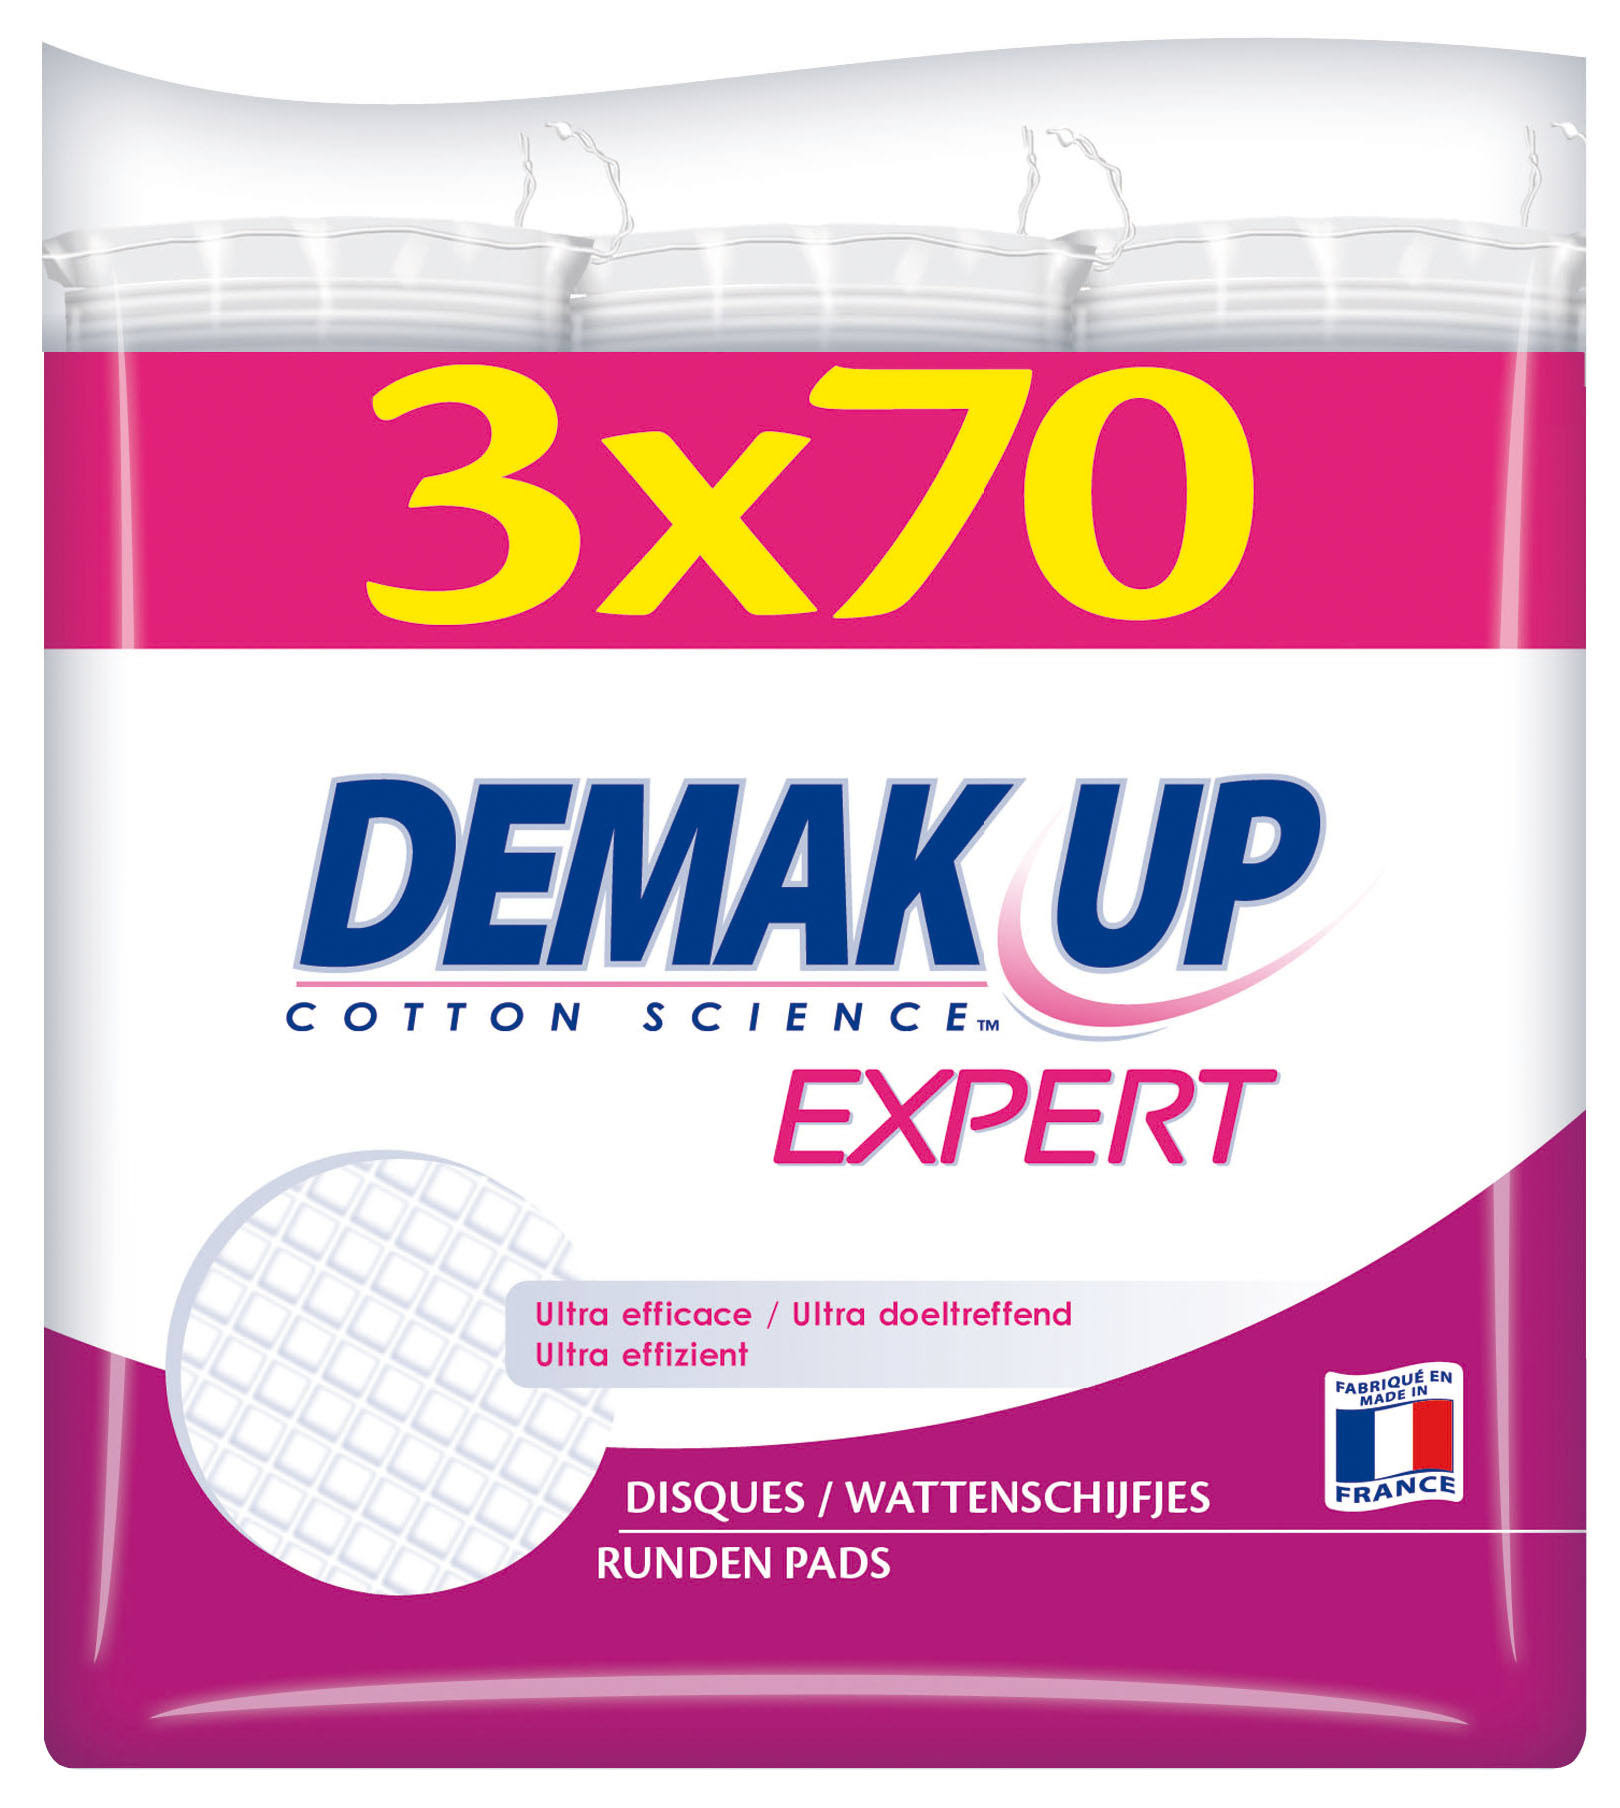 Demak Up Expert Cotton Pads - 3 x 70 Round Pads